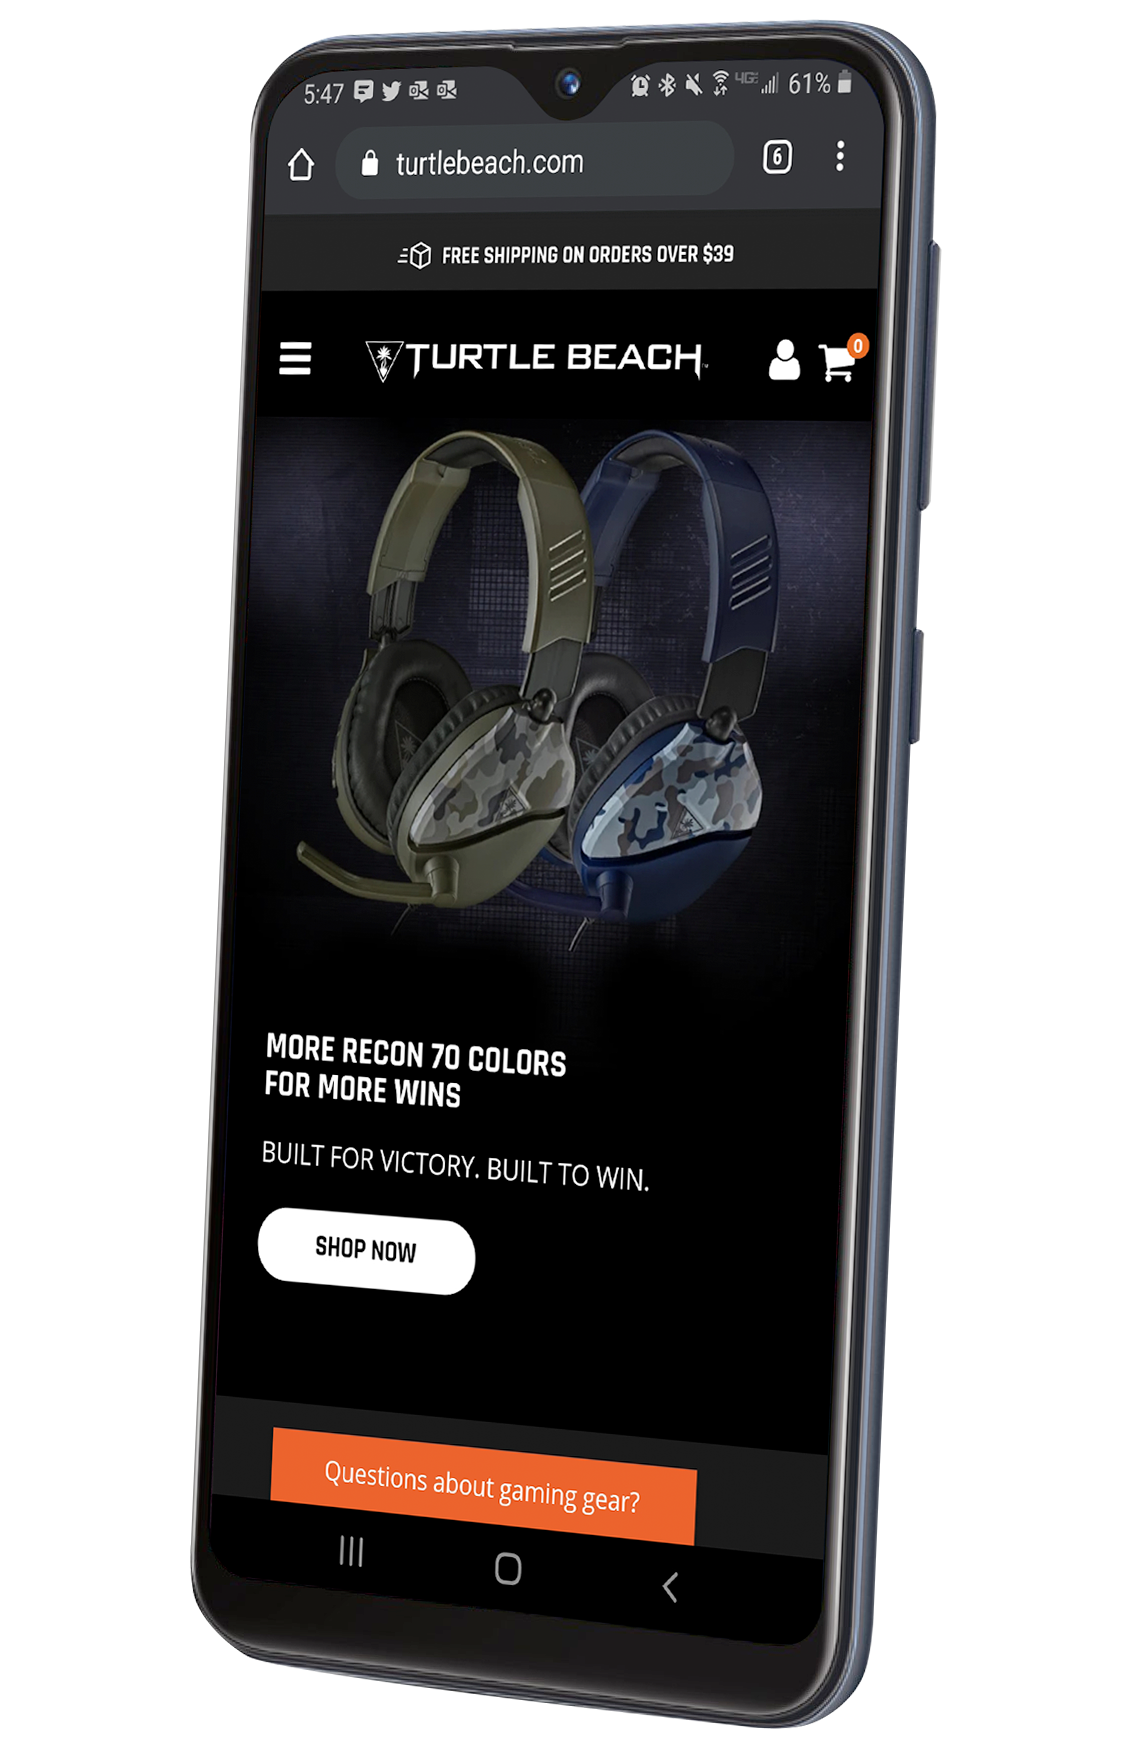 Get A Free Samsung Galaxy A10e Smartphone With Any Turtle Beach Headset Purchase!